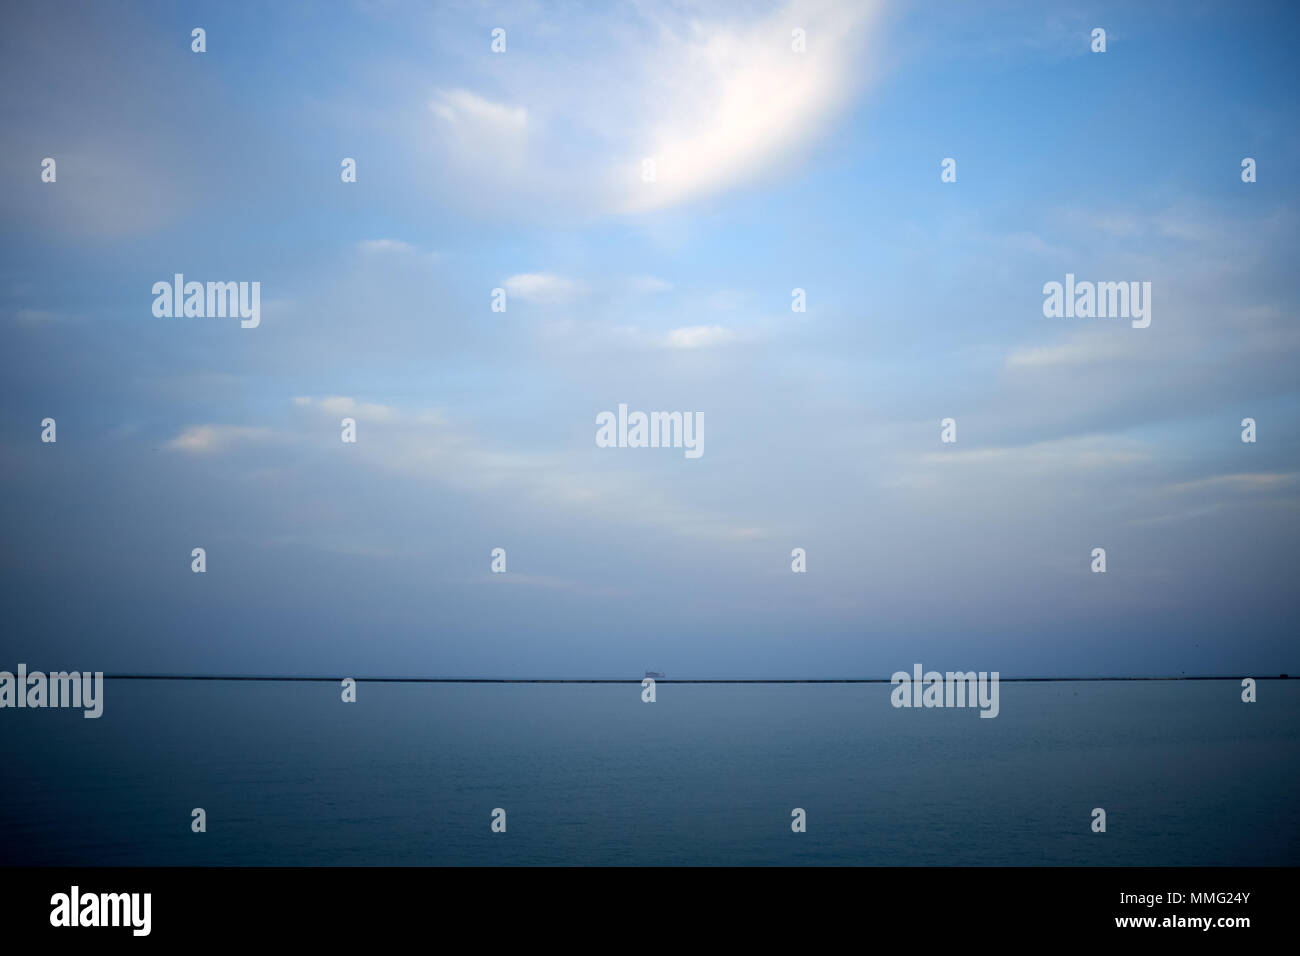 Minimalist landscape on Lake Michigan, Illinois with a distant view of the breakwater at Navy Pier, Chicago on the horizon viewed over calm blue water - Stock Image